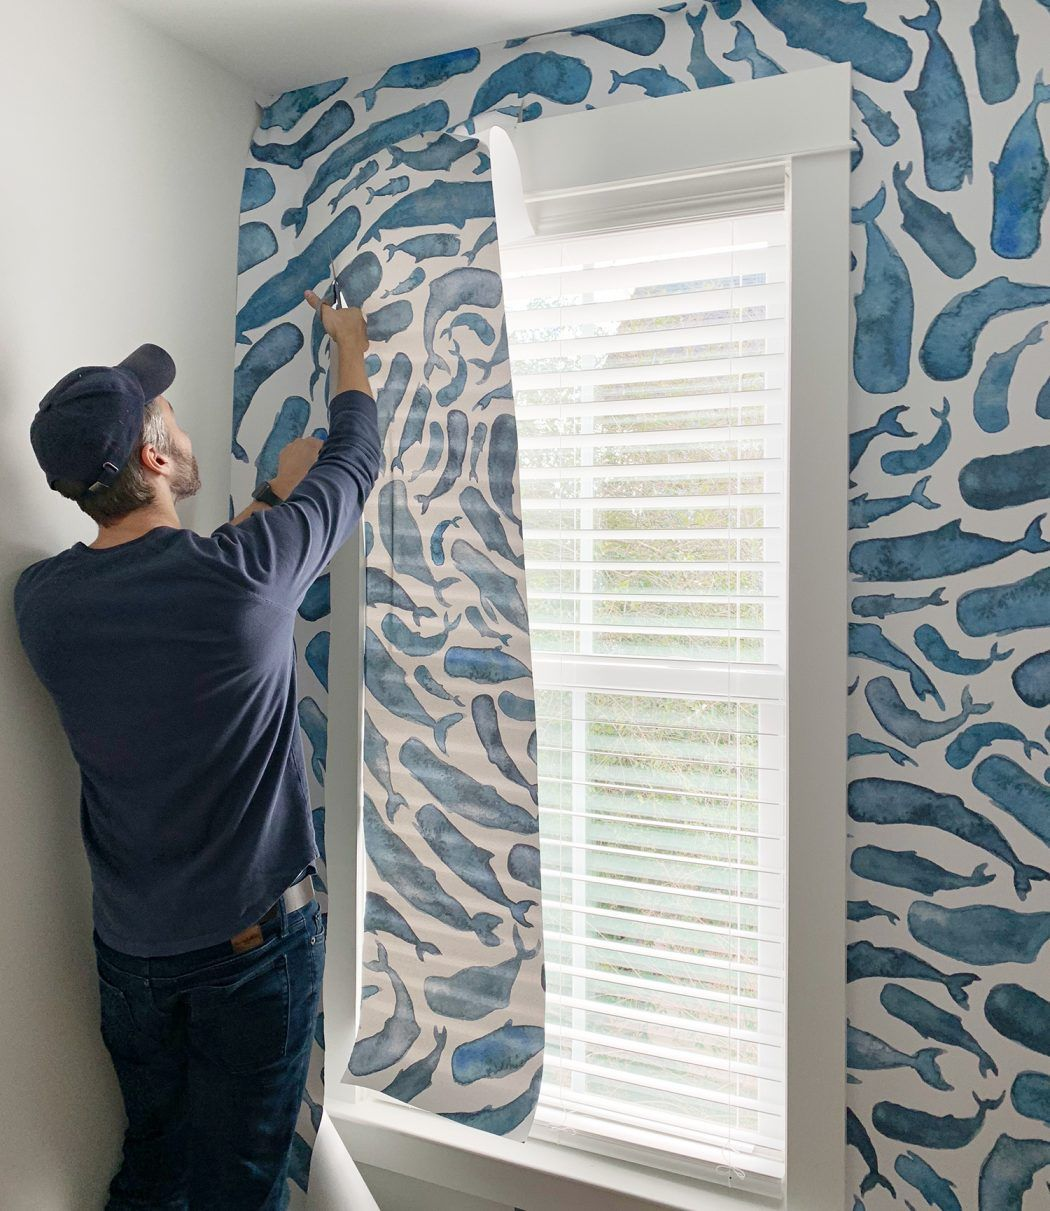 How To Install A Removable Wallpaper Mural Young House Love Removable Wallpaper Mural Wallpaper Diy Wallpaper